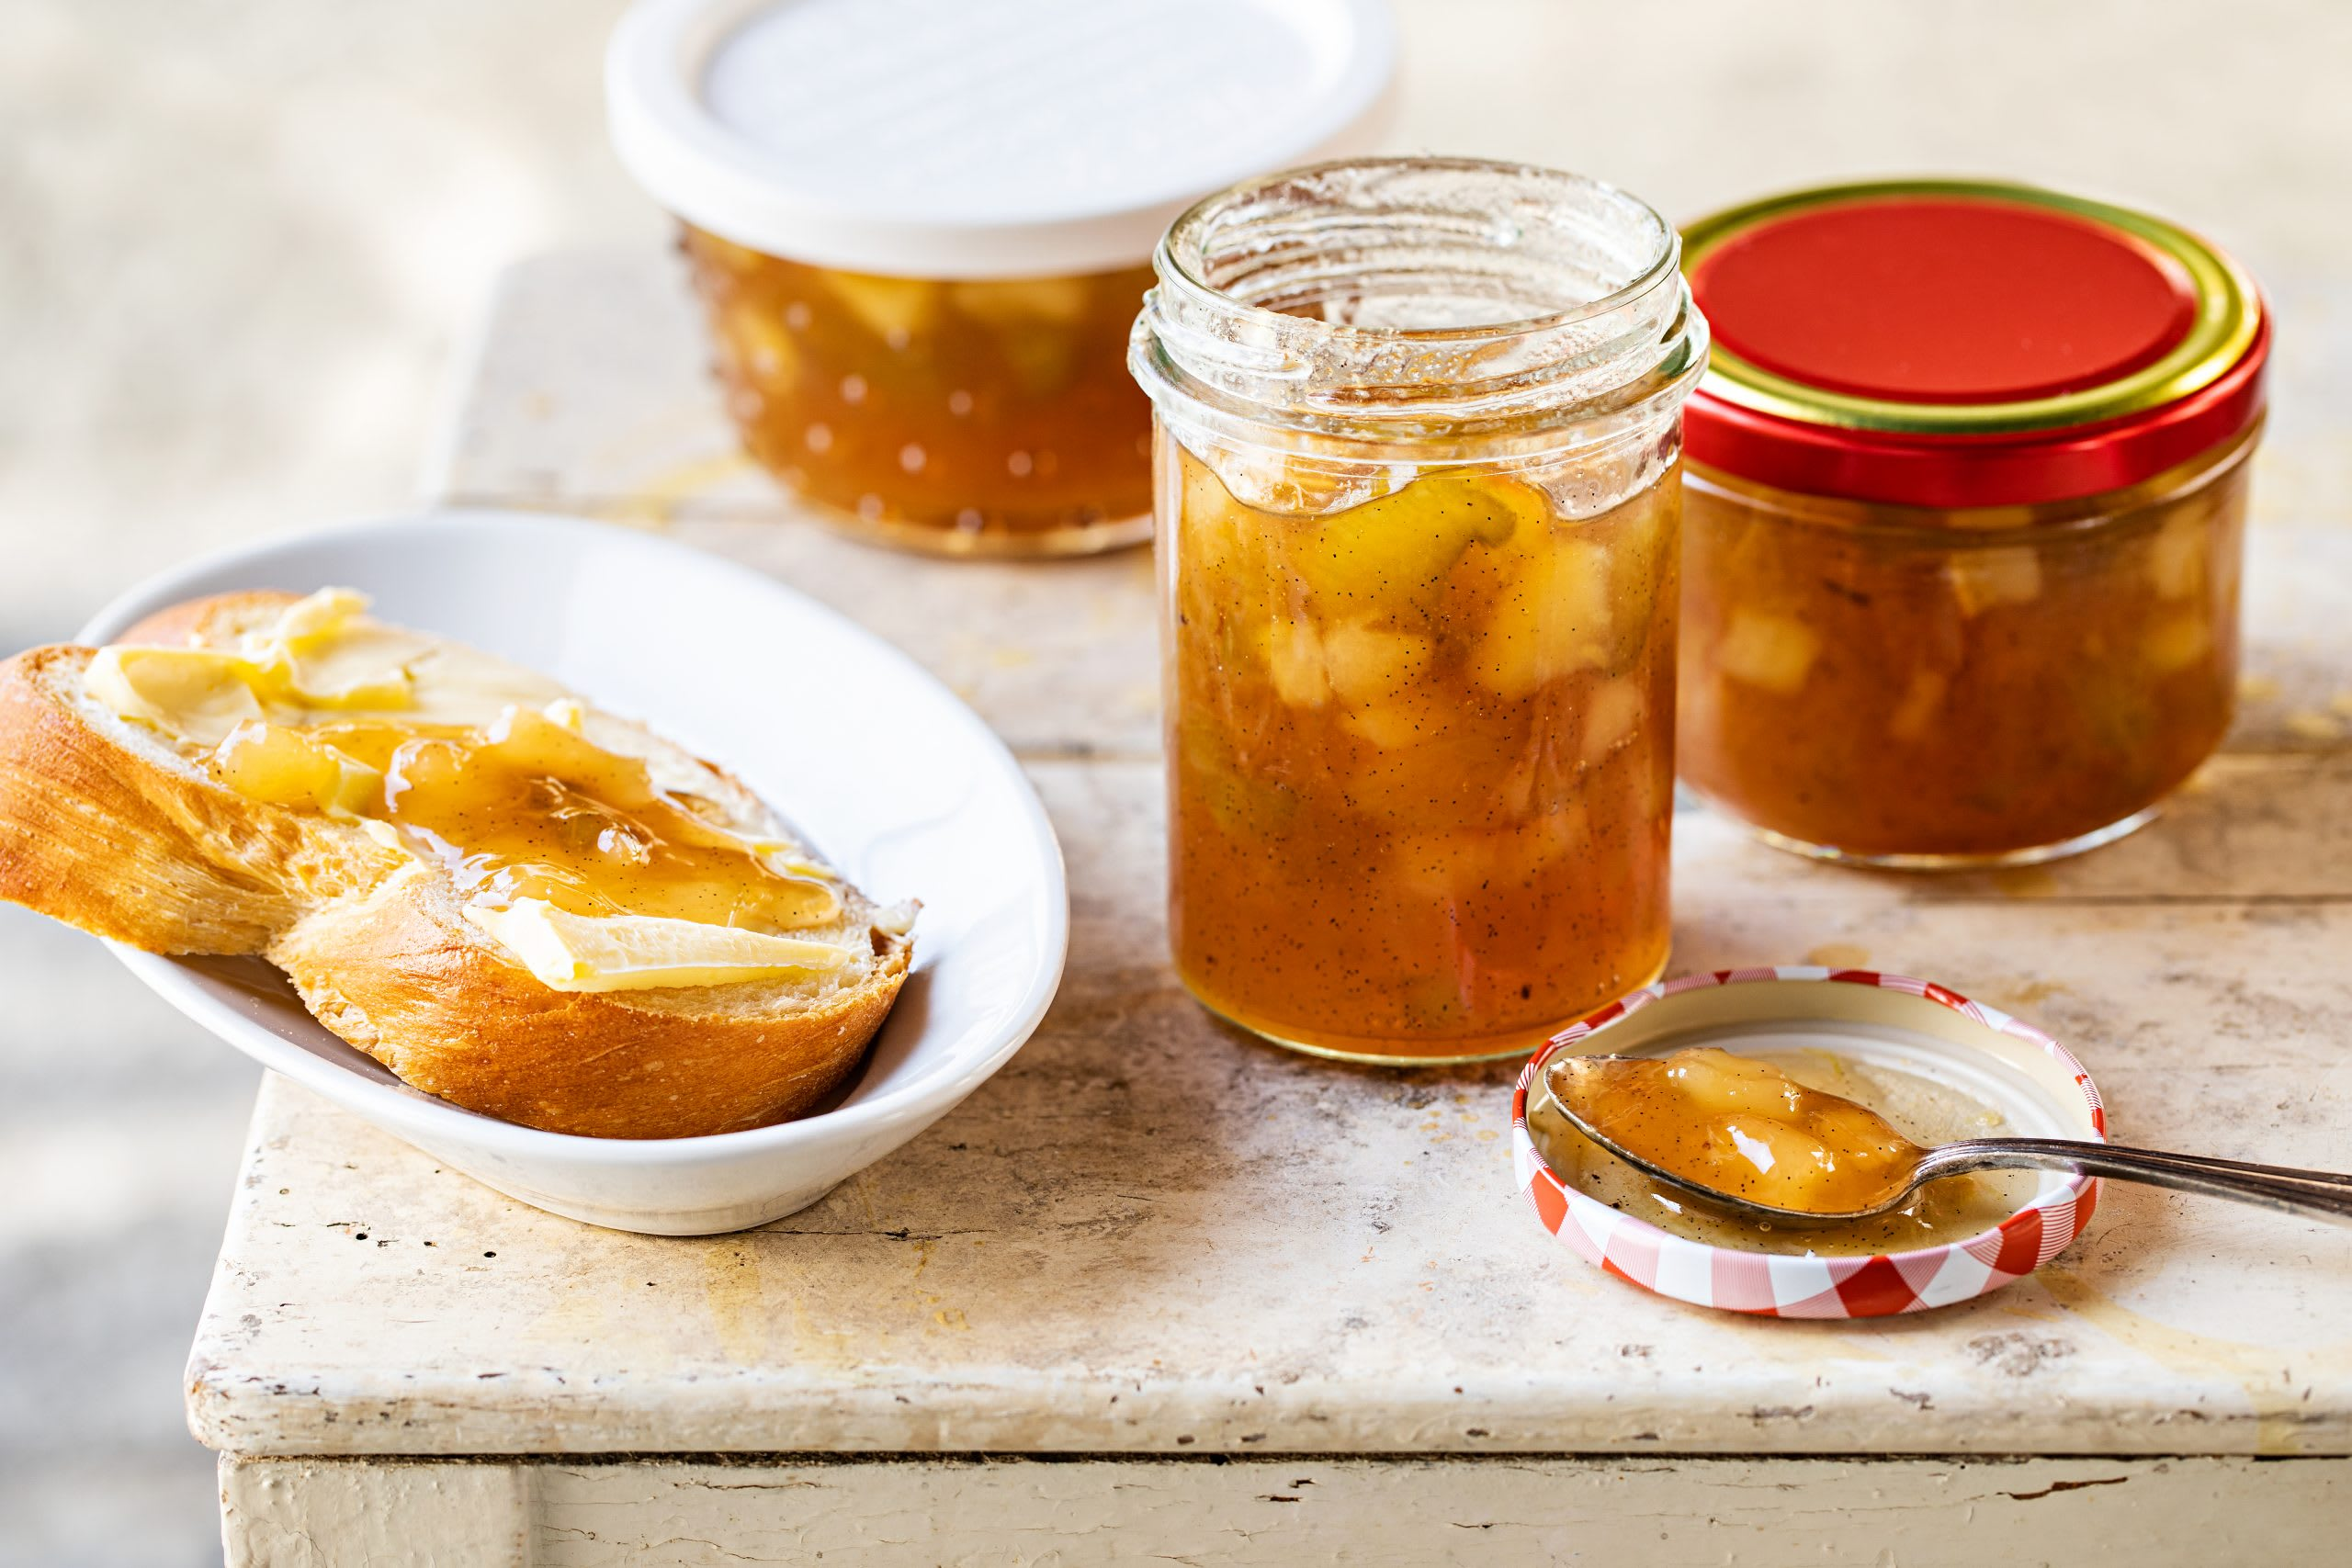 Confiture poire-rhubarbe